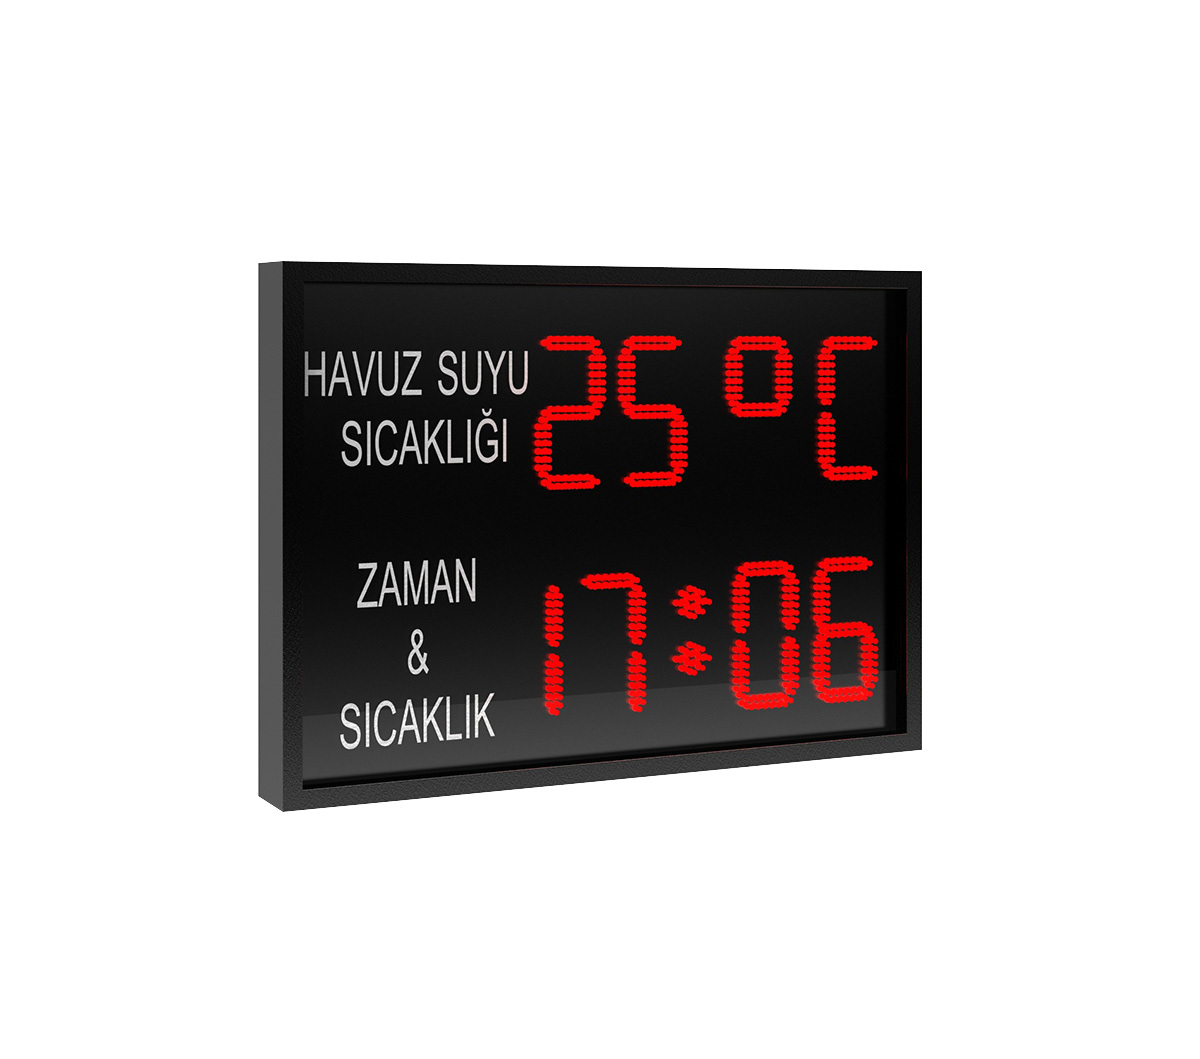 BS 152 POOL WATER TEMPERATURE, TIME, TEMPERATURE OUTDOOR PANEL